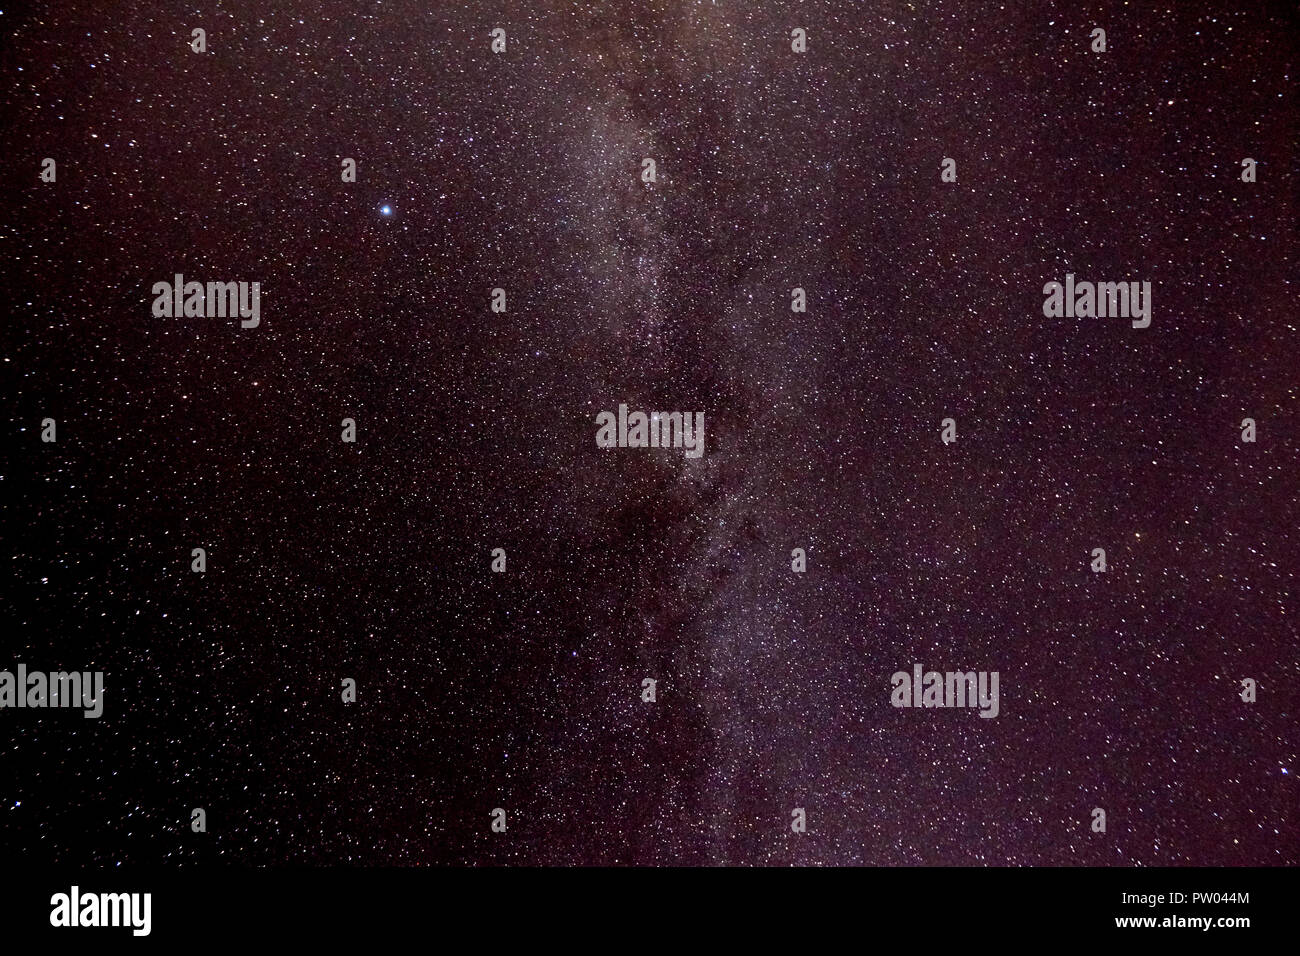 stars in the milky way as seen in september night sky in the west coast of ireland - Stock Image